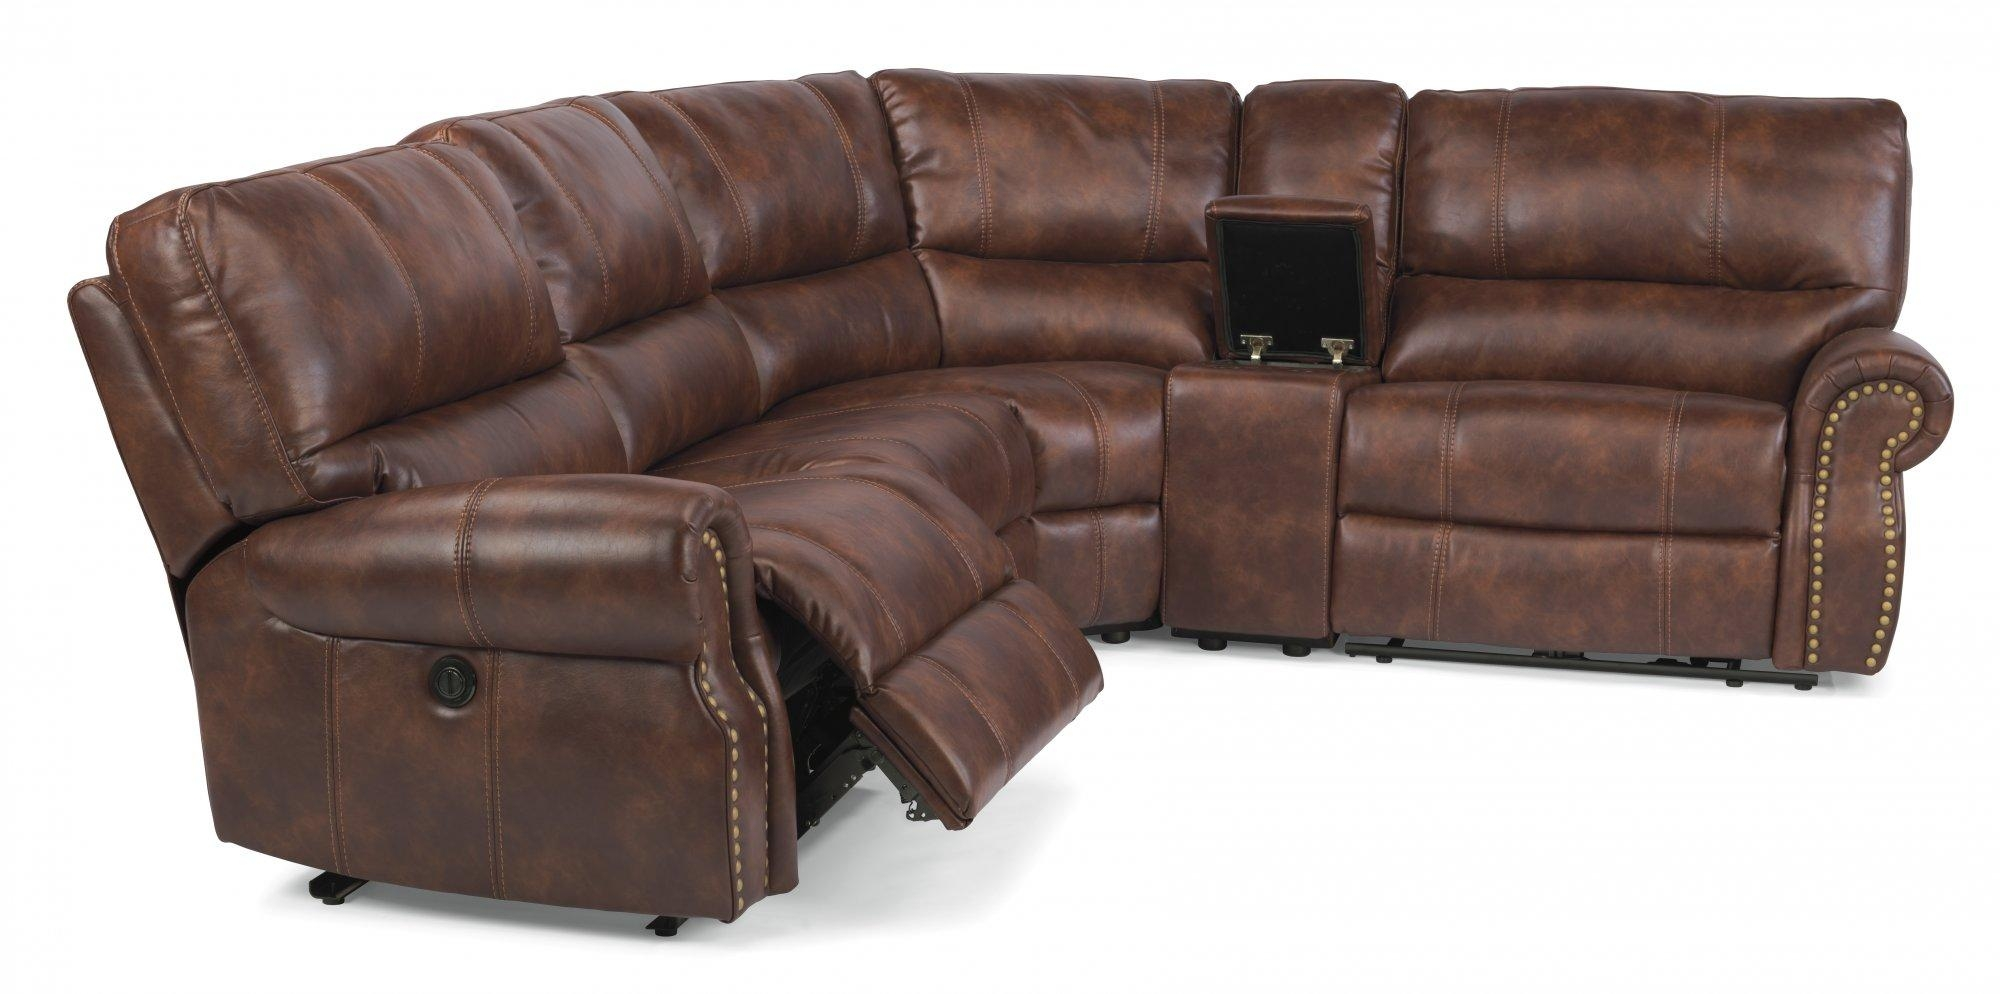 Sofas Center : Leather Huge Sectional Sofa Inspiring Hughes Fabric Within Huge Leather Sectional (View 13 of 20)